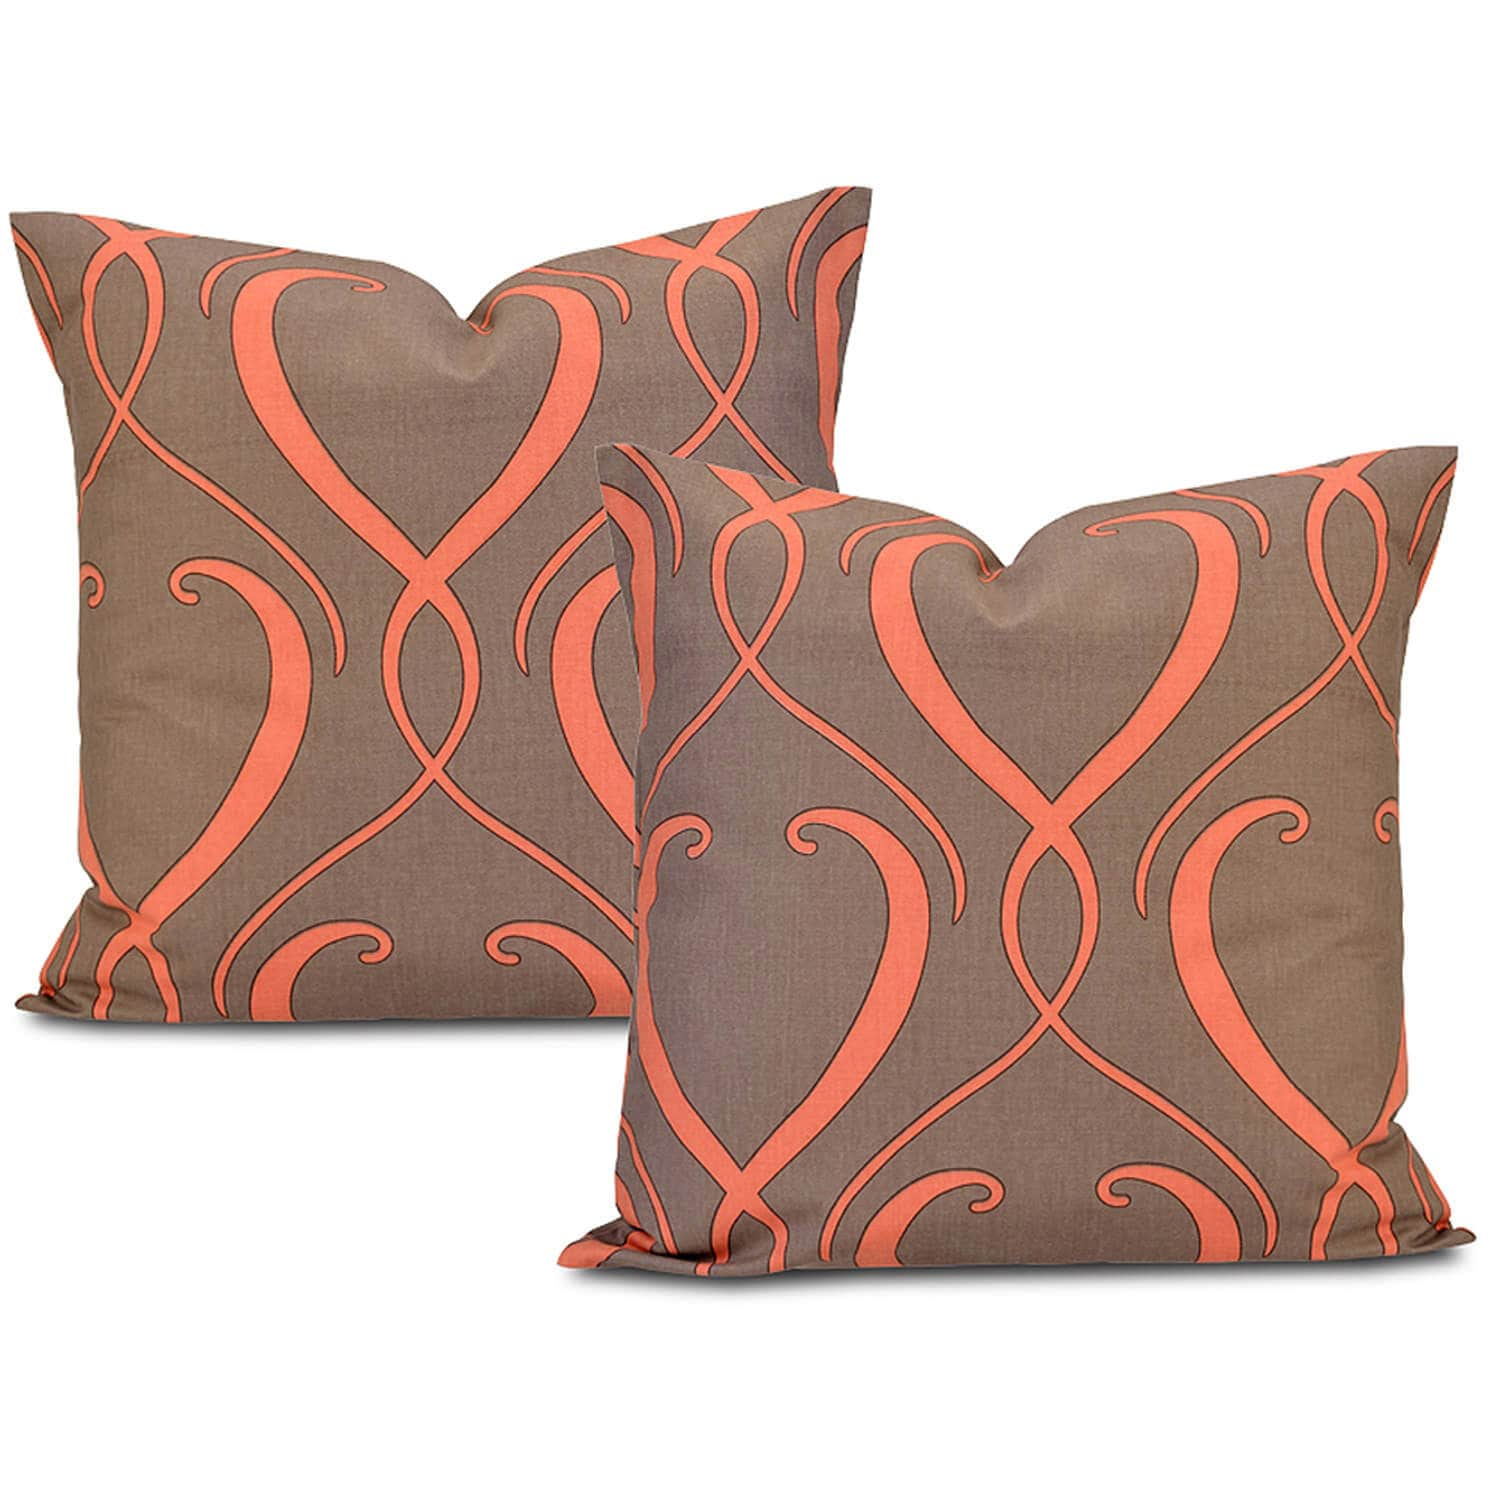 Buy Draperies Panama Printed Cotton Cushion Cover Pair